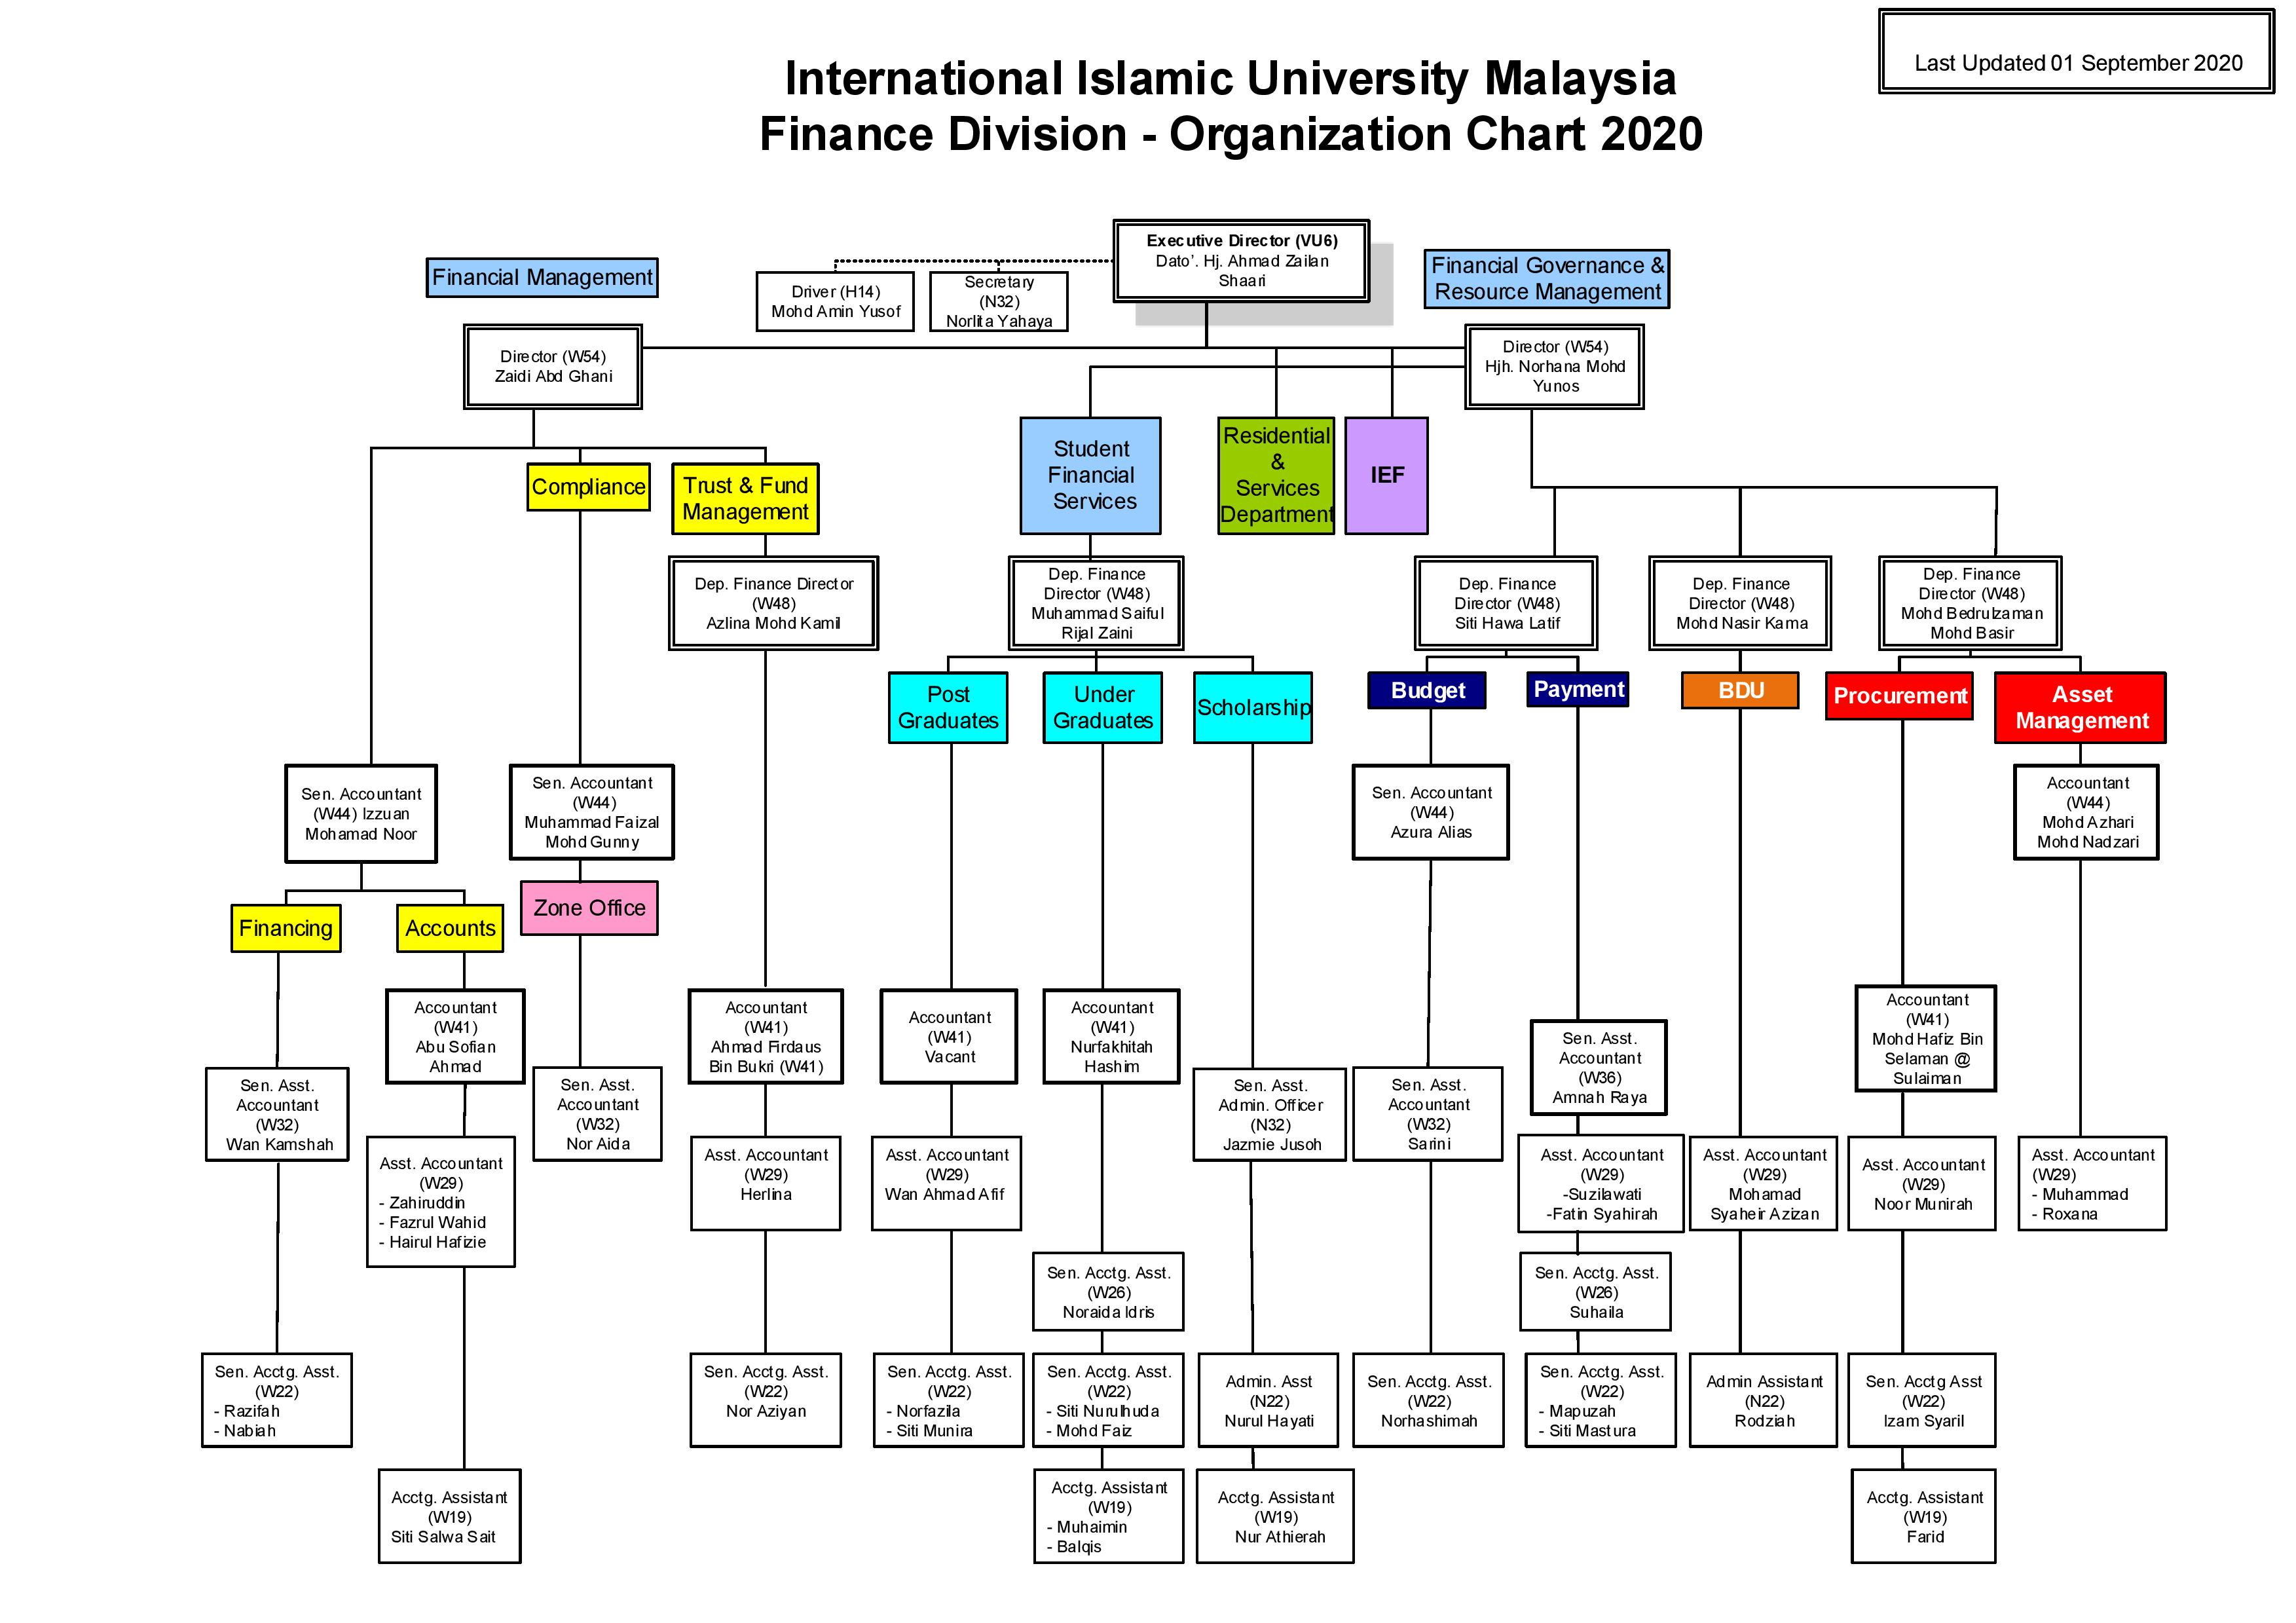 Organization Chart FD as at 010920